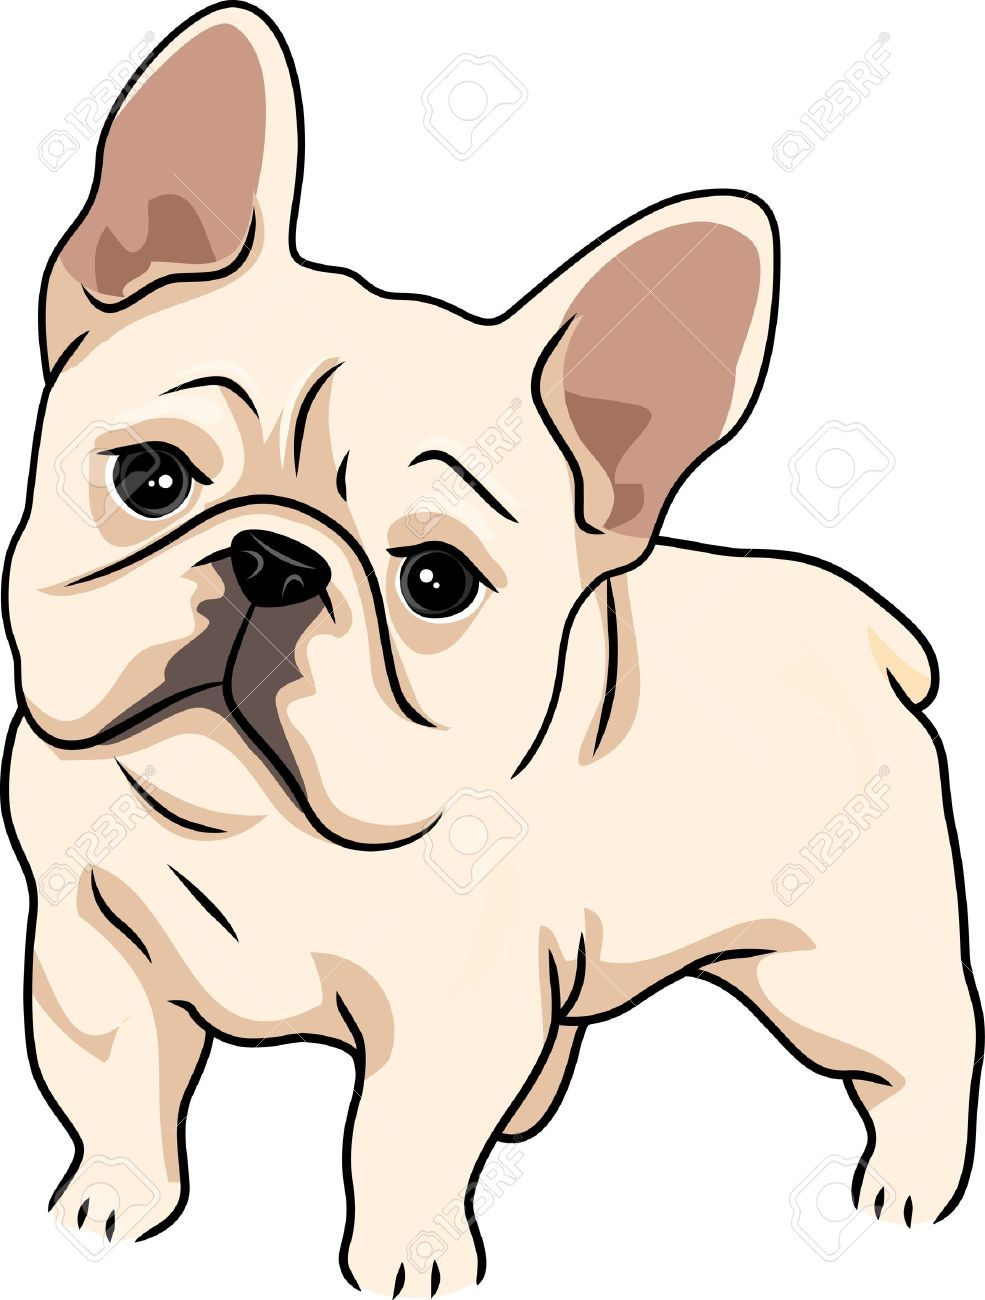 Cute french bulldog clipart 7 » Clipart Portal.